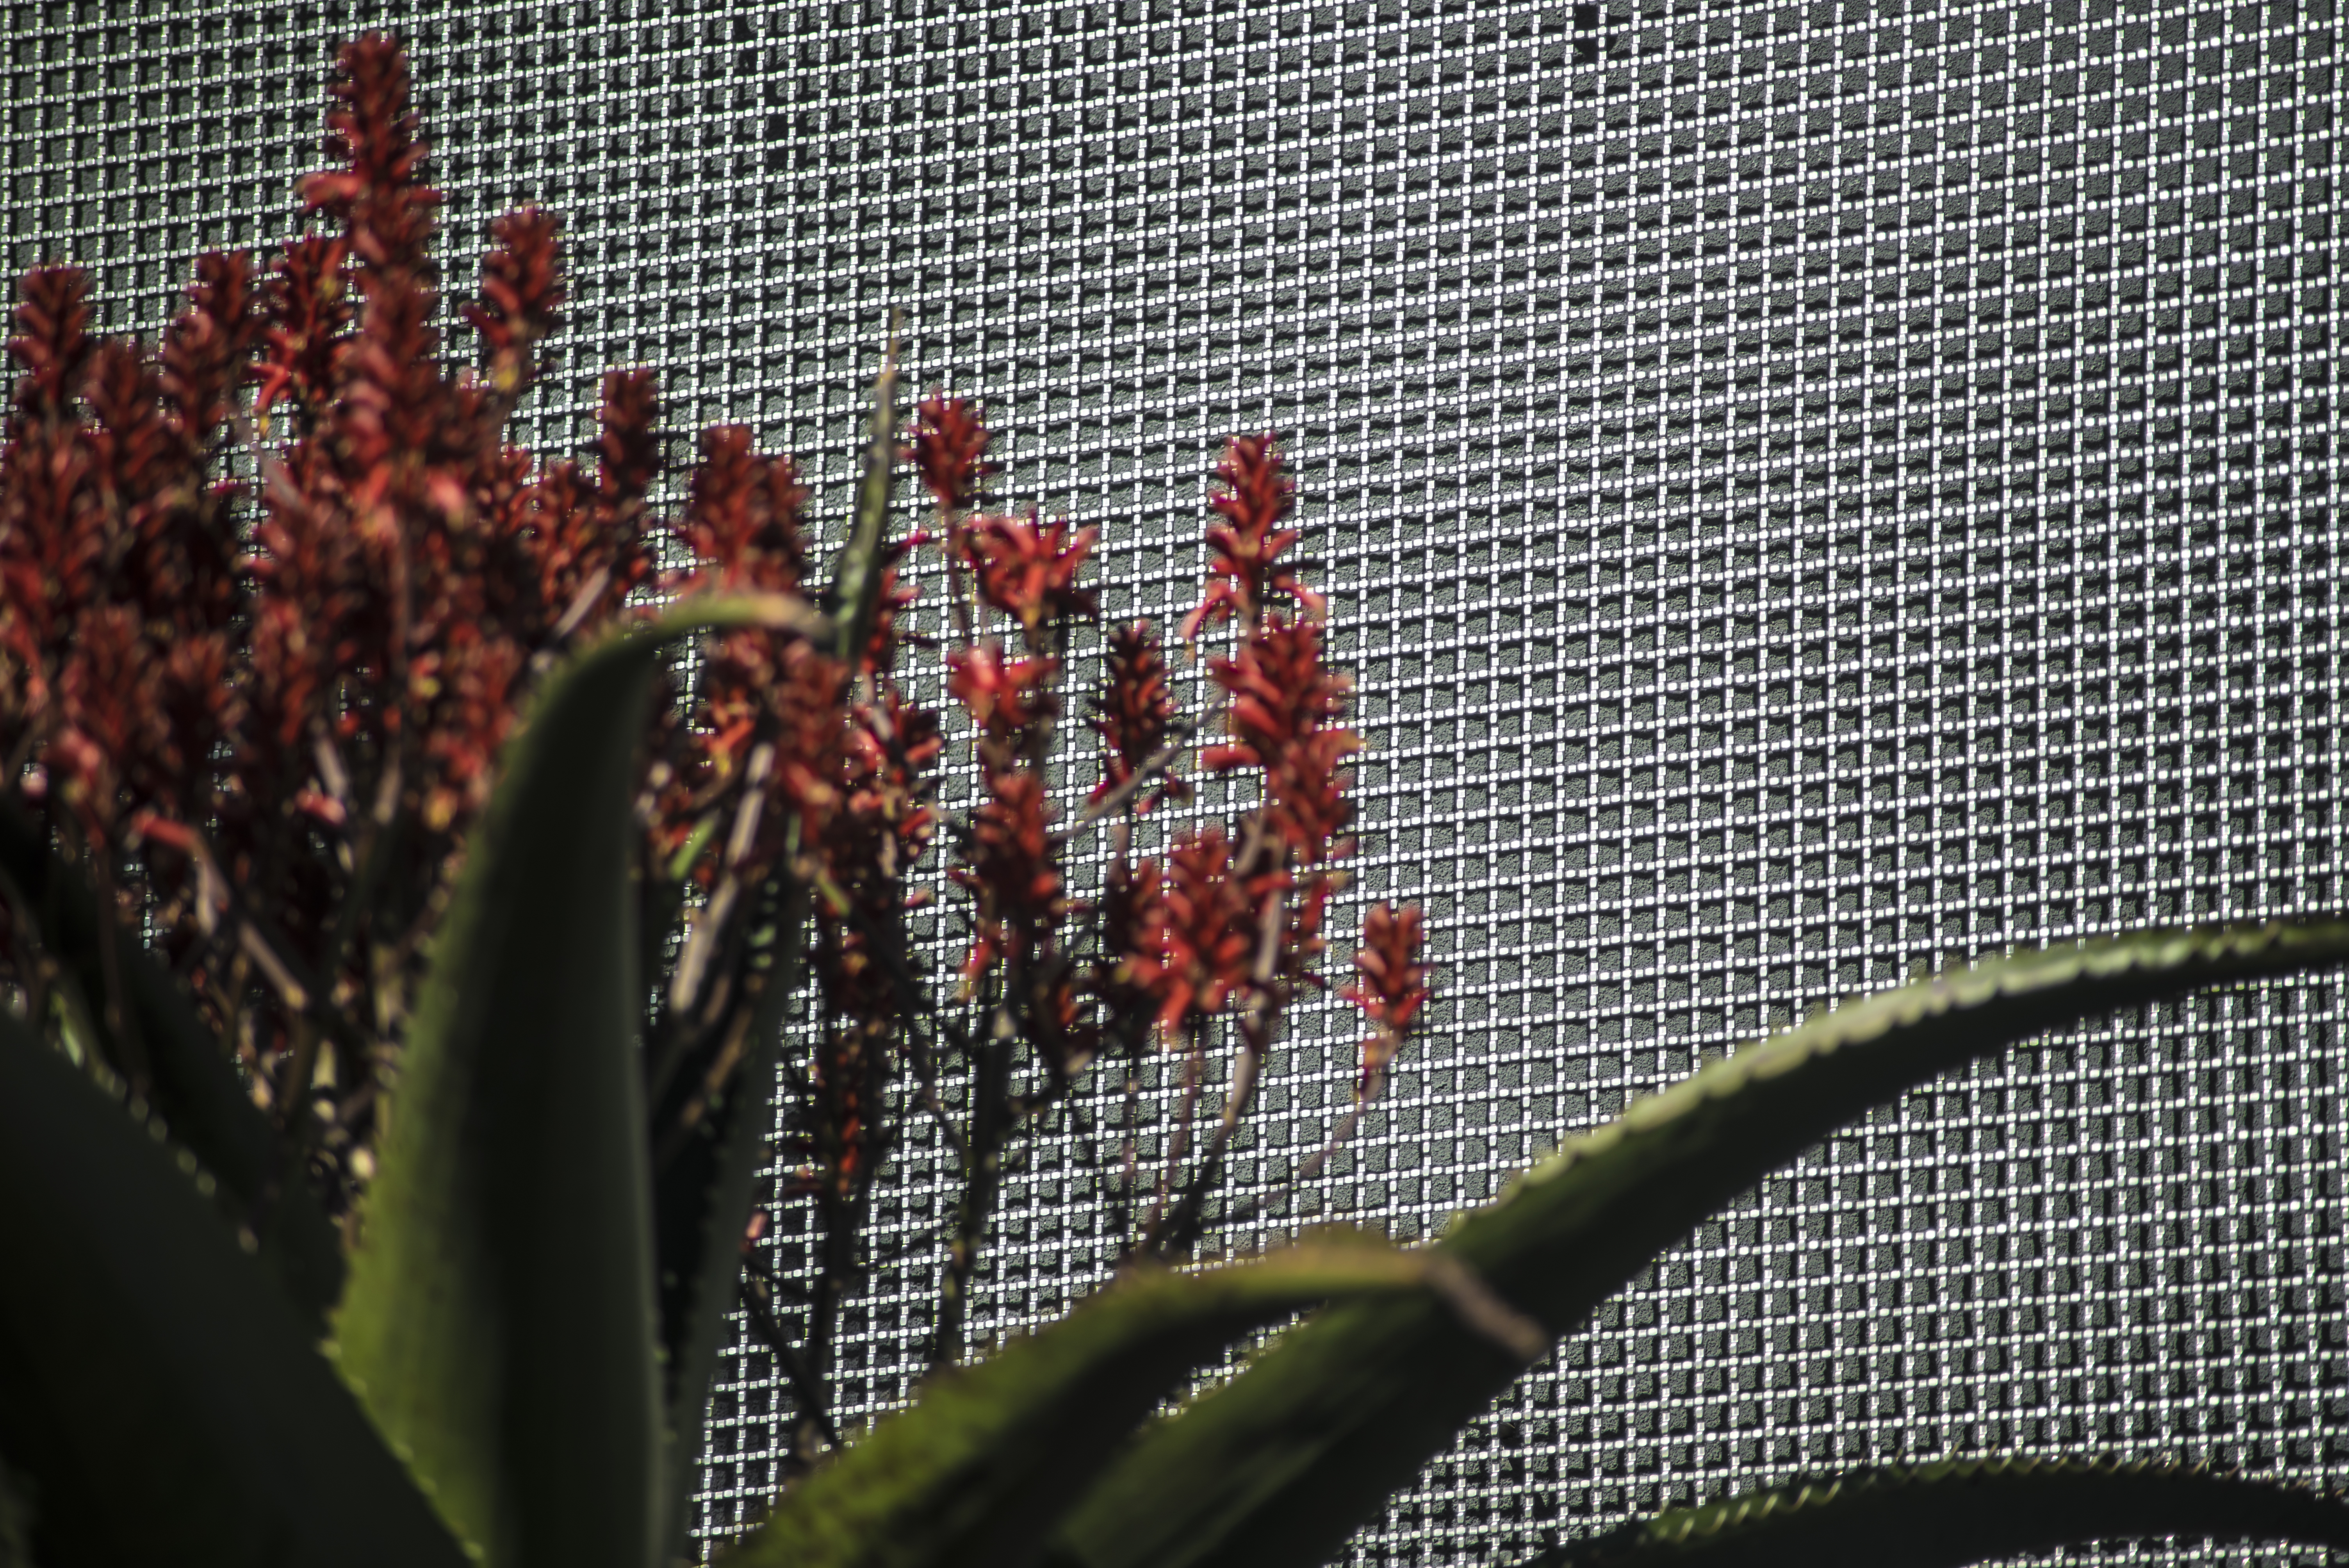 The ephemeral quality of the distinct plants in the entry garden beautifully frame the S-9 wire mesh screen.